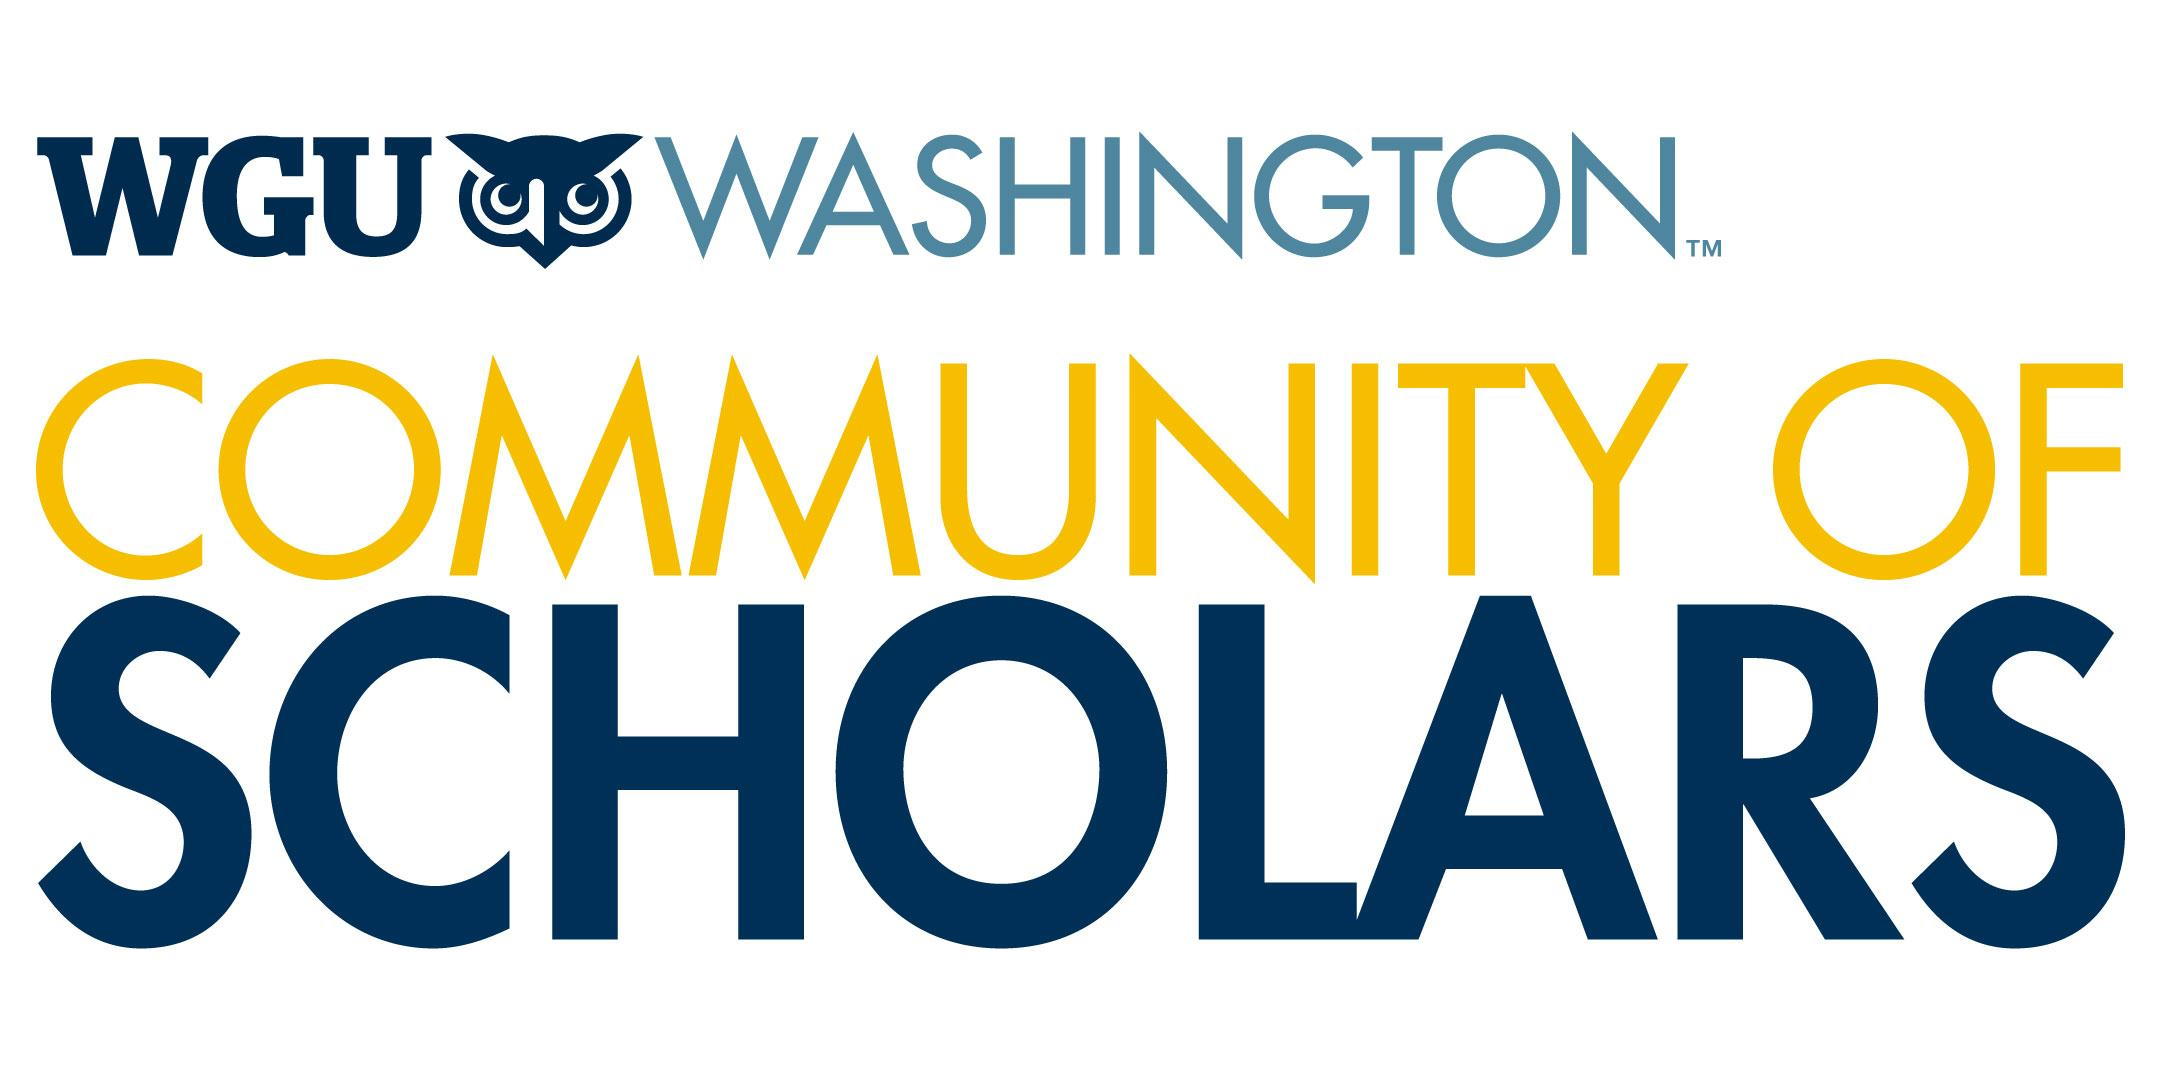 February Community of Scholars Celebration